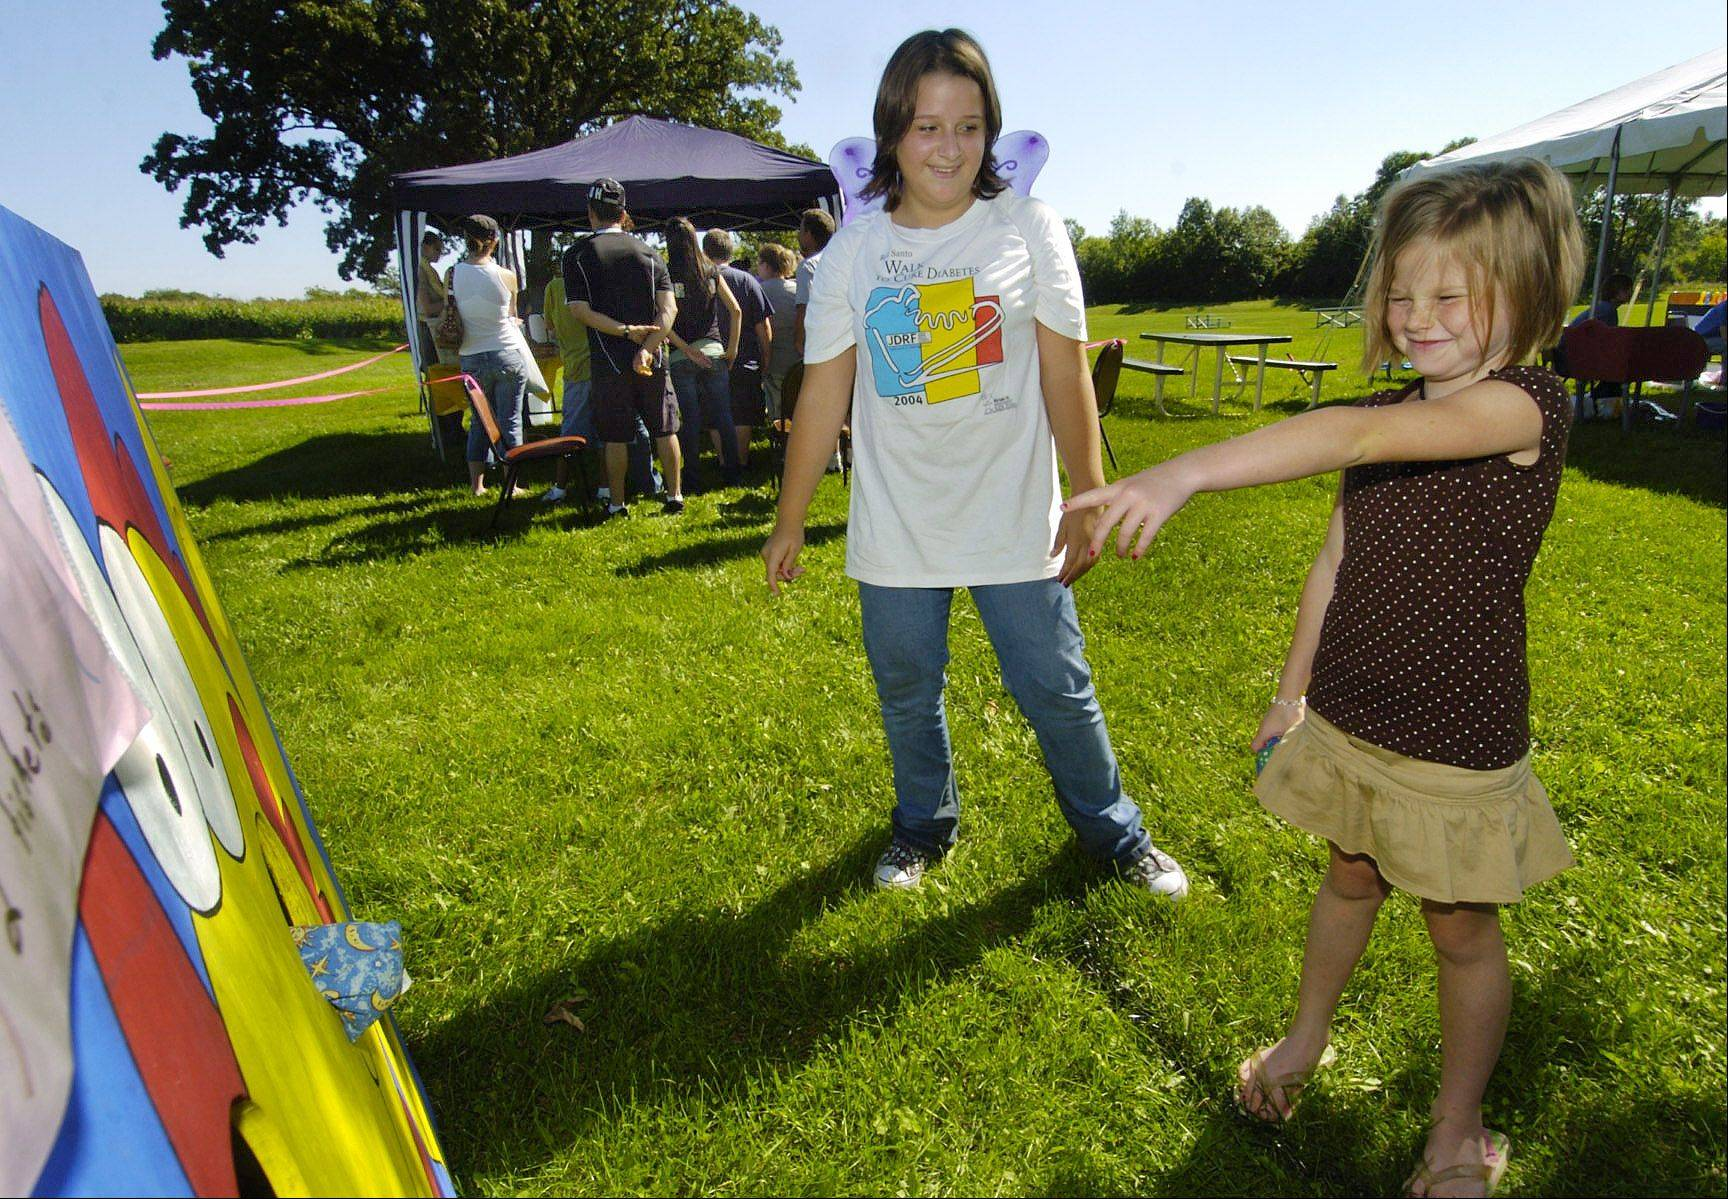 Samantha Stautz, left, watches her cousin Grace Reblin try bean bag toss during the Kids Carnival in Grandwood Park near Gurnee that raises money for the Juvenile Diabetes Research Foundation. Samantha started the carnival in honor of Grace, who has Type 1 diabetes.